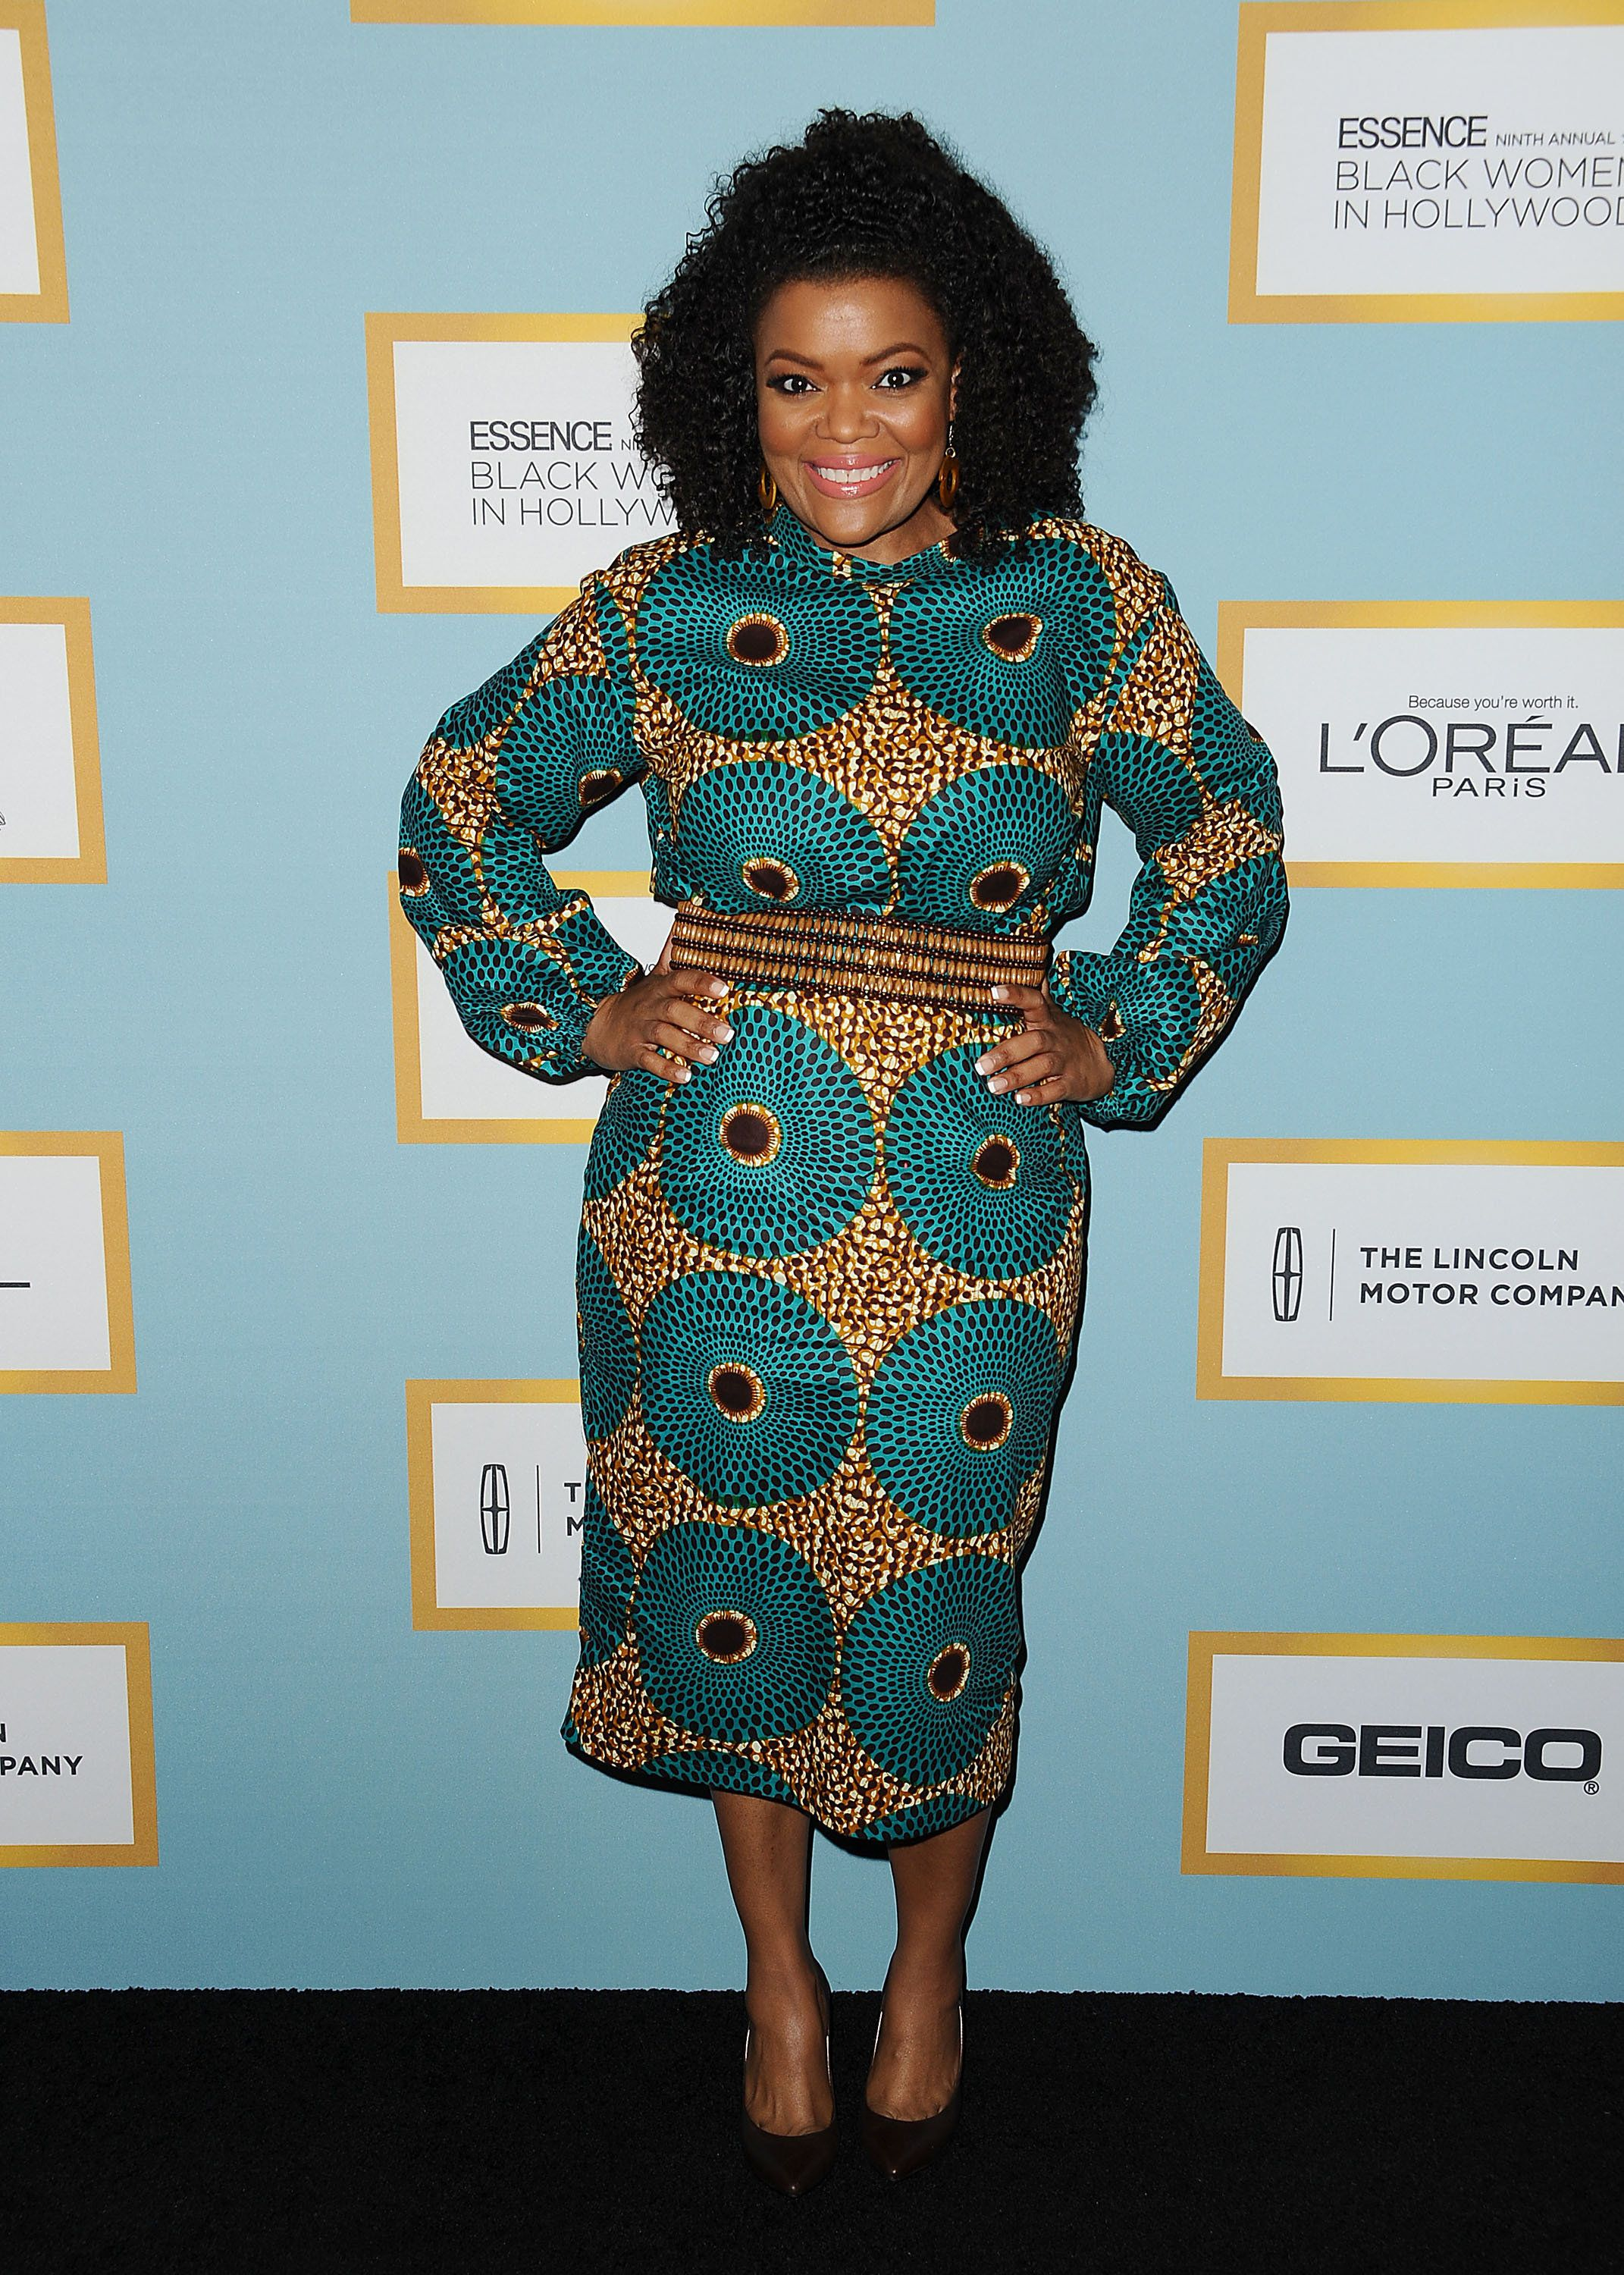 BEVERLY HILLS, CA - FEBRUARY 25:  Actress Yvette Nicole Brown attends the Essence 9th annual Black Women In Hollywood event at the Beverly Wilshire Four Seasons Hotel on February 25, 2016 in Beverly Hills, California.  (Photo by Jason LaVeris/WireImage)